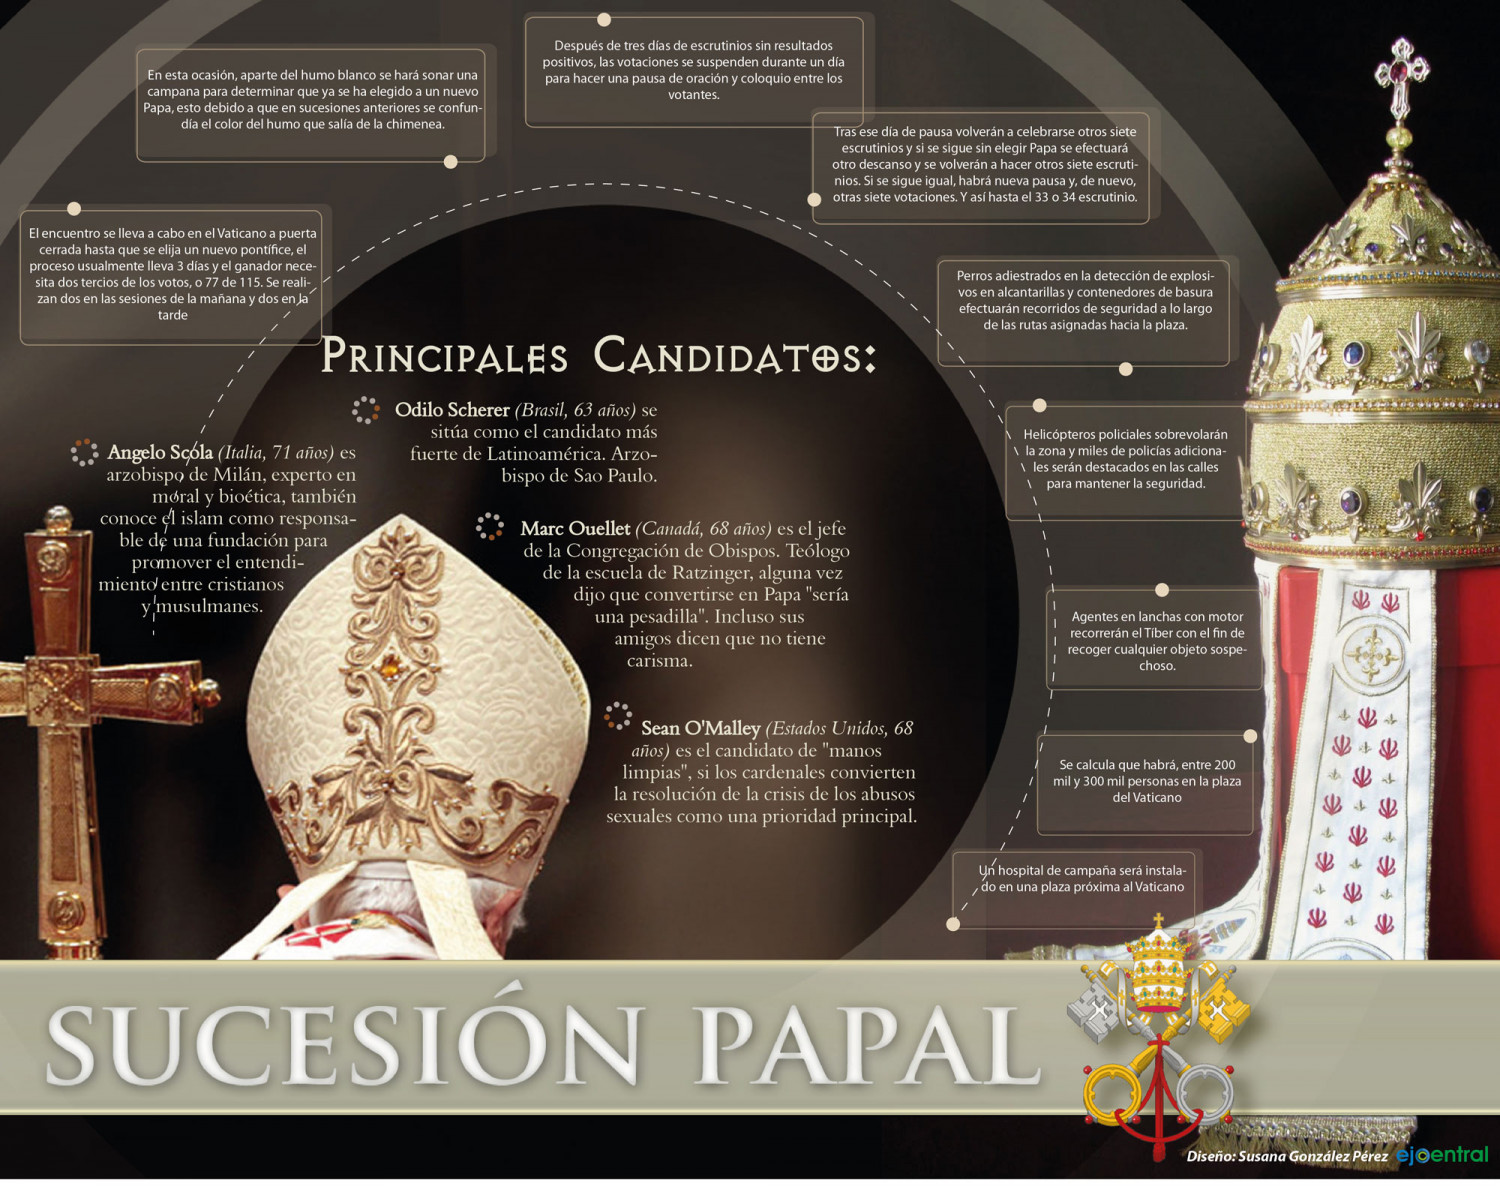 Sucesión Papal Infographic